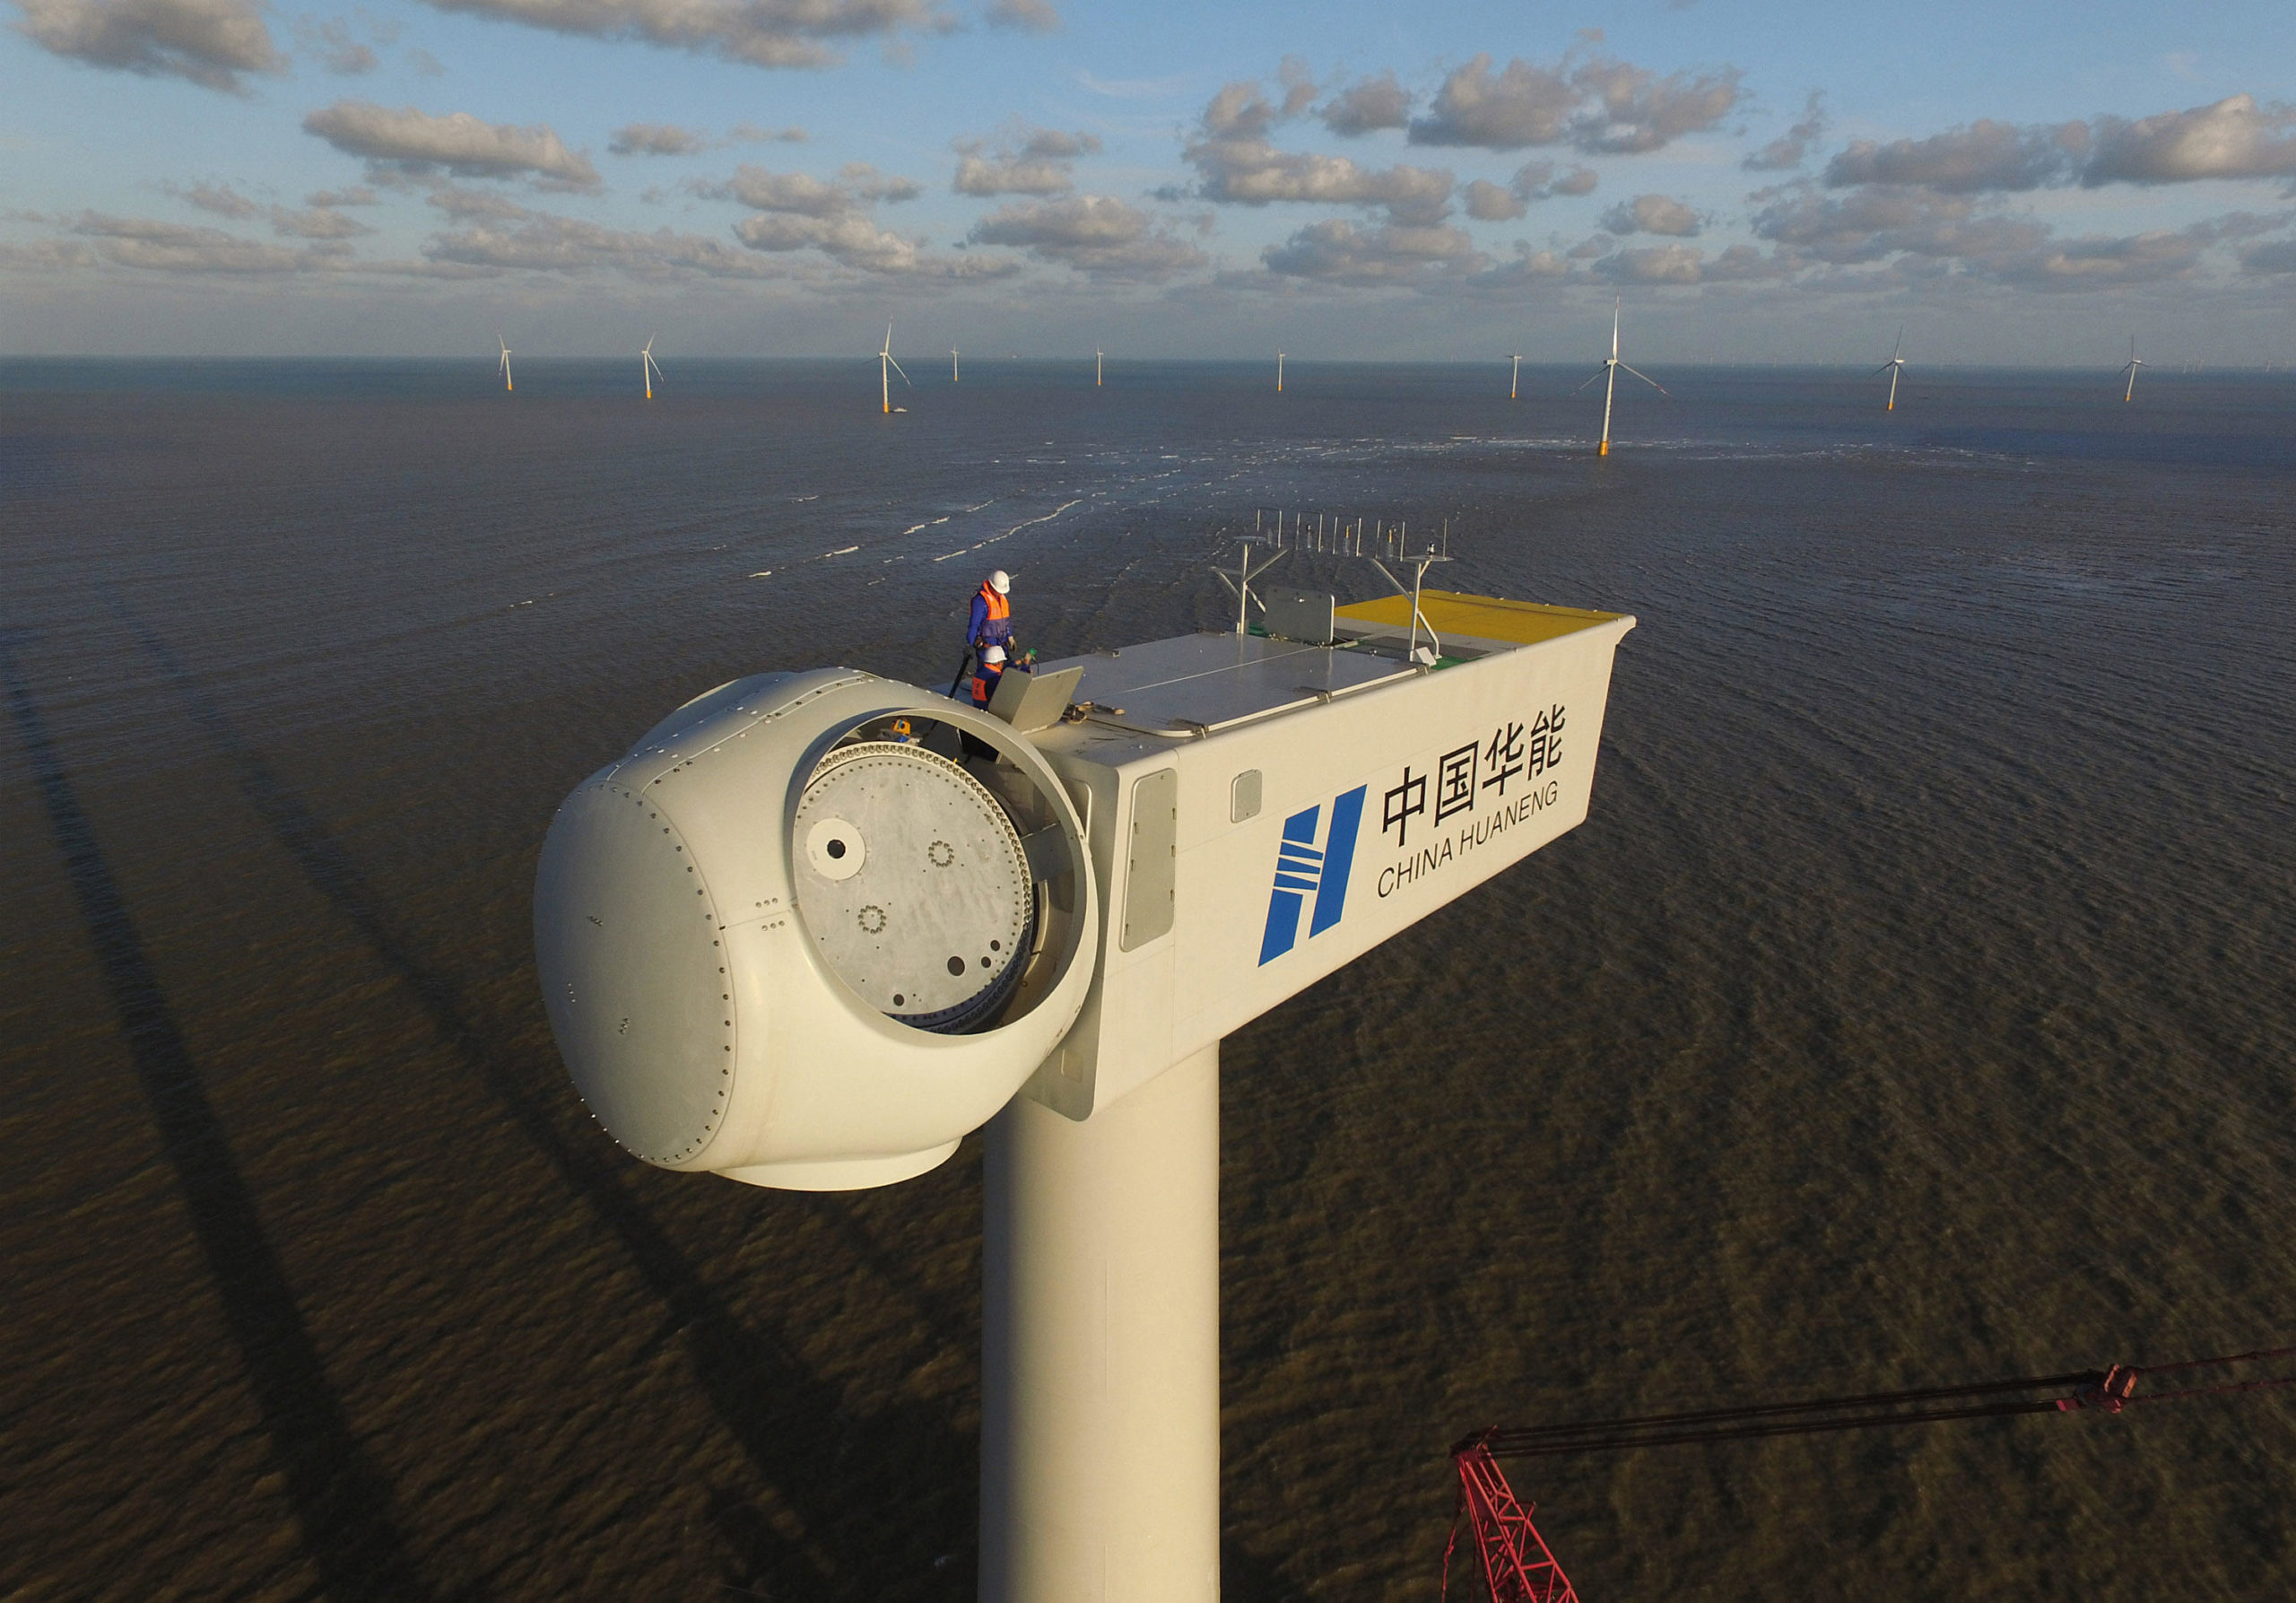 A wind turbine hub, just before the addition of blades (Image: Huang Hai / Alamy)